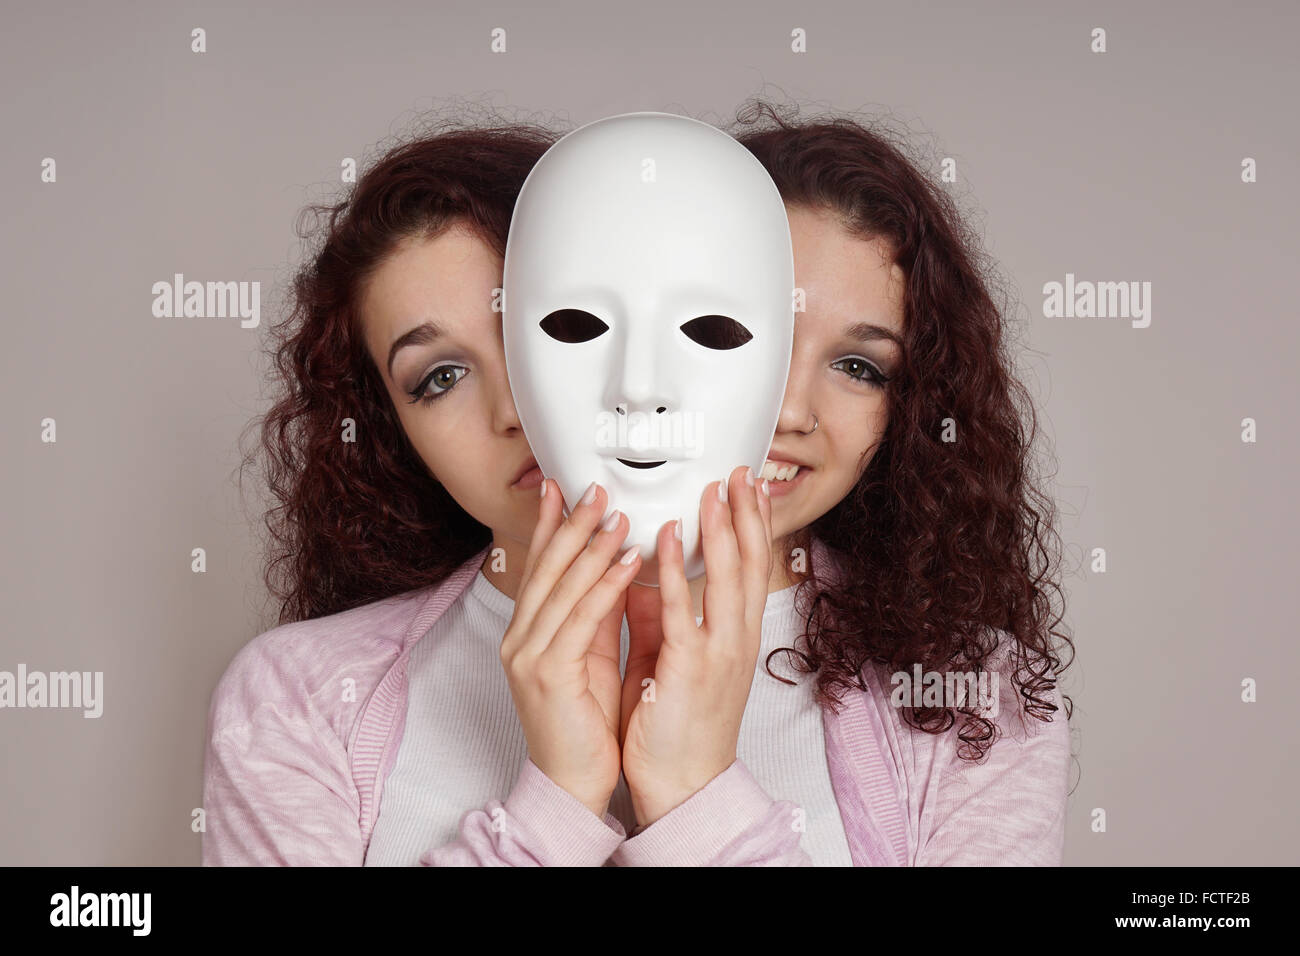 two-faced woman manic depression concept Stock Photo